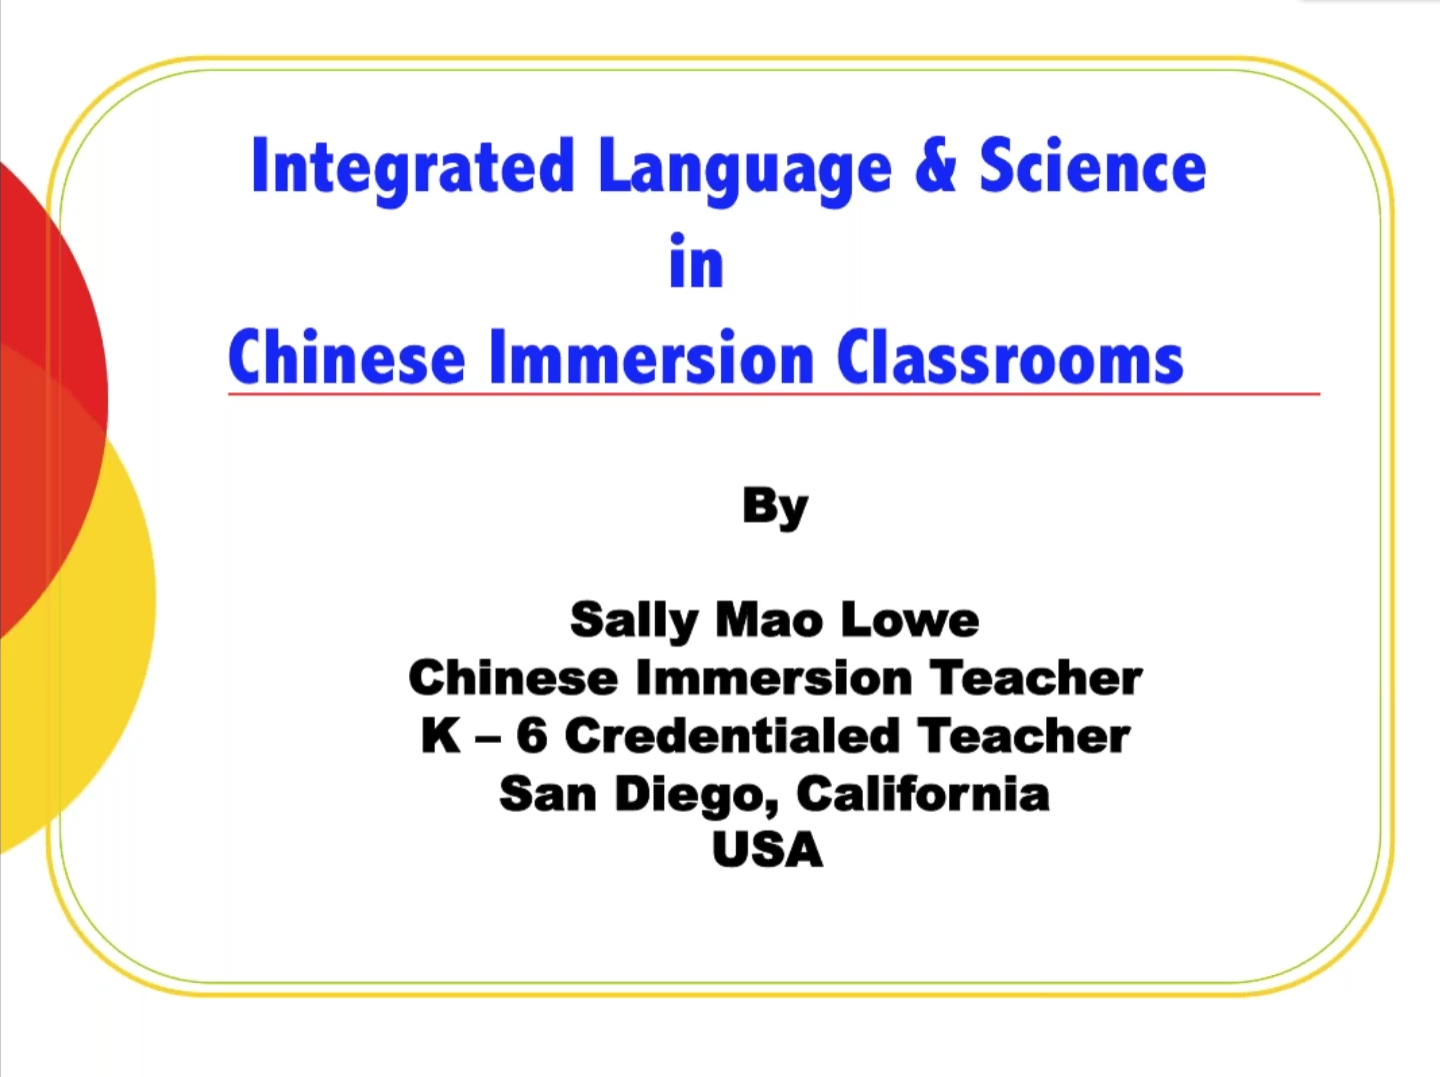 Integrated Language and Science Lessons in Chinese Immersion Classrooms-Sally Mao老师精彩讲座回顾